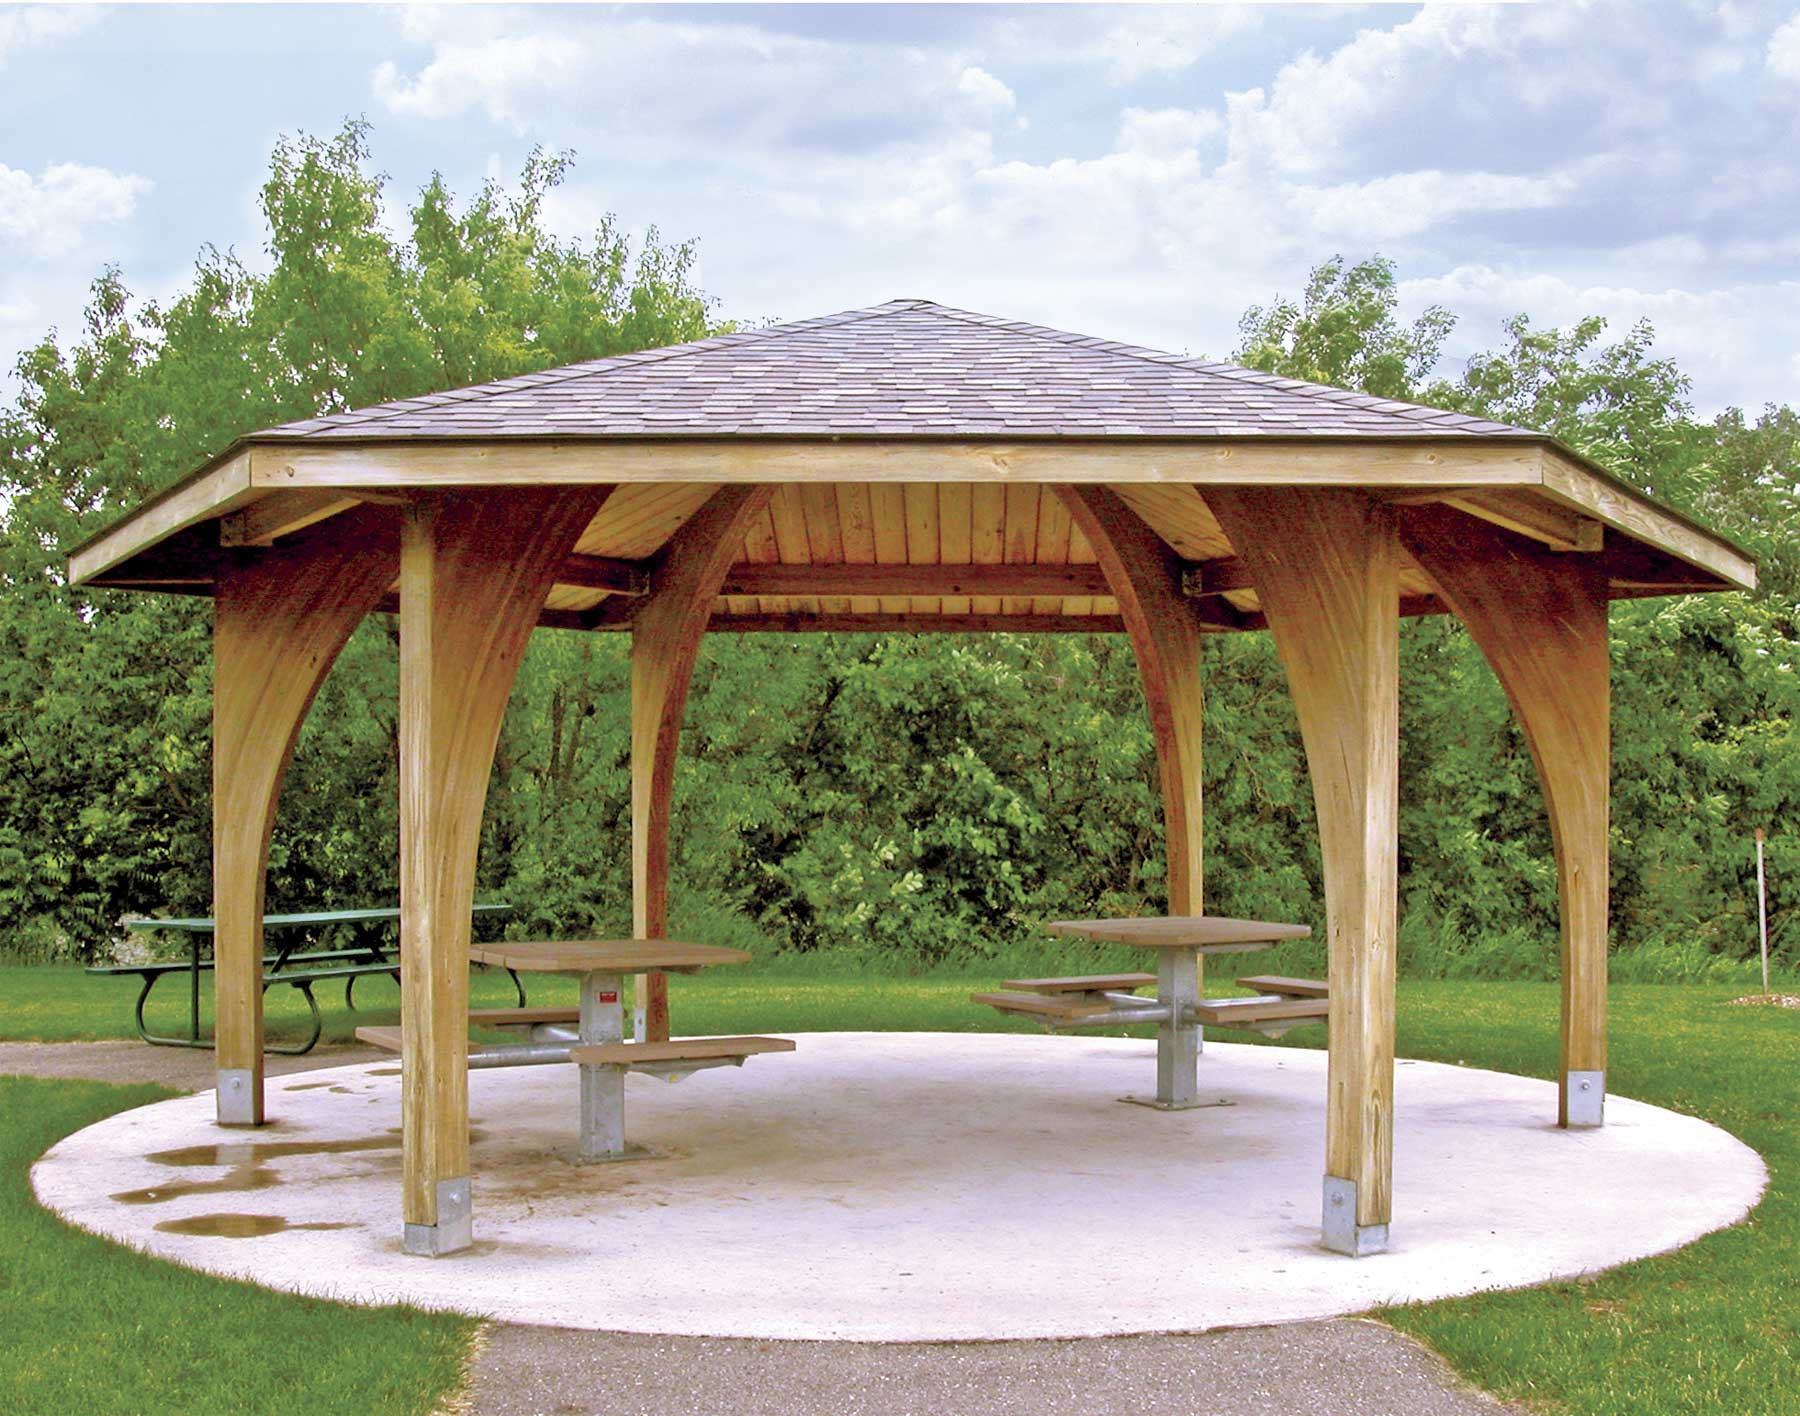 Wood single roof charleston hexagon pavilions for Garden pavilion designs